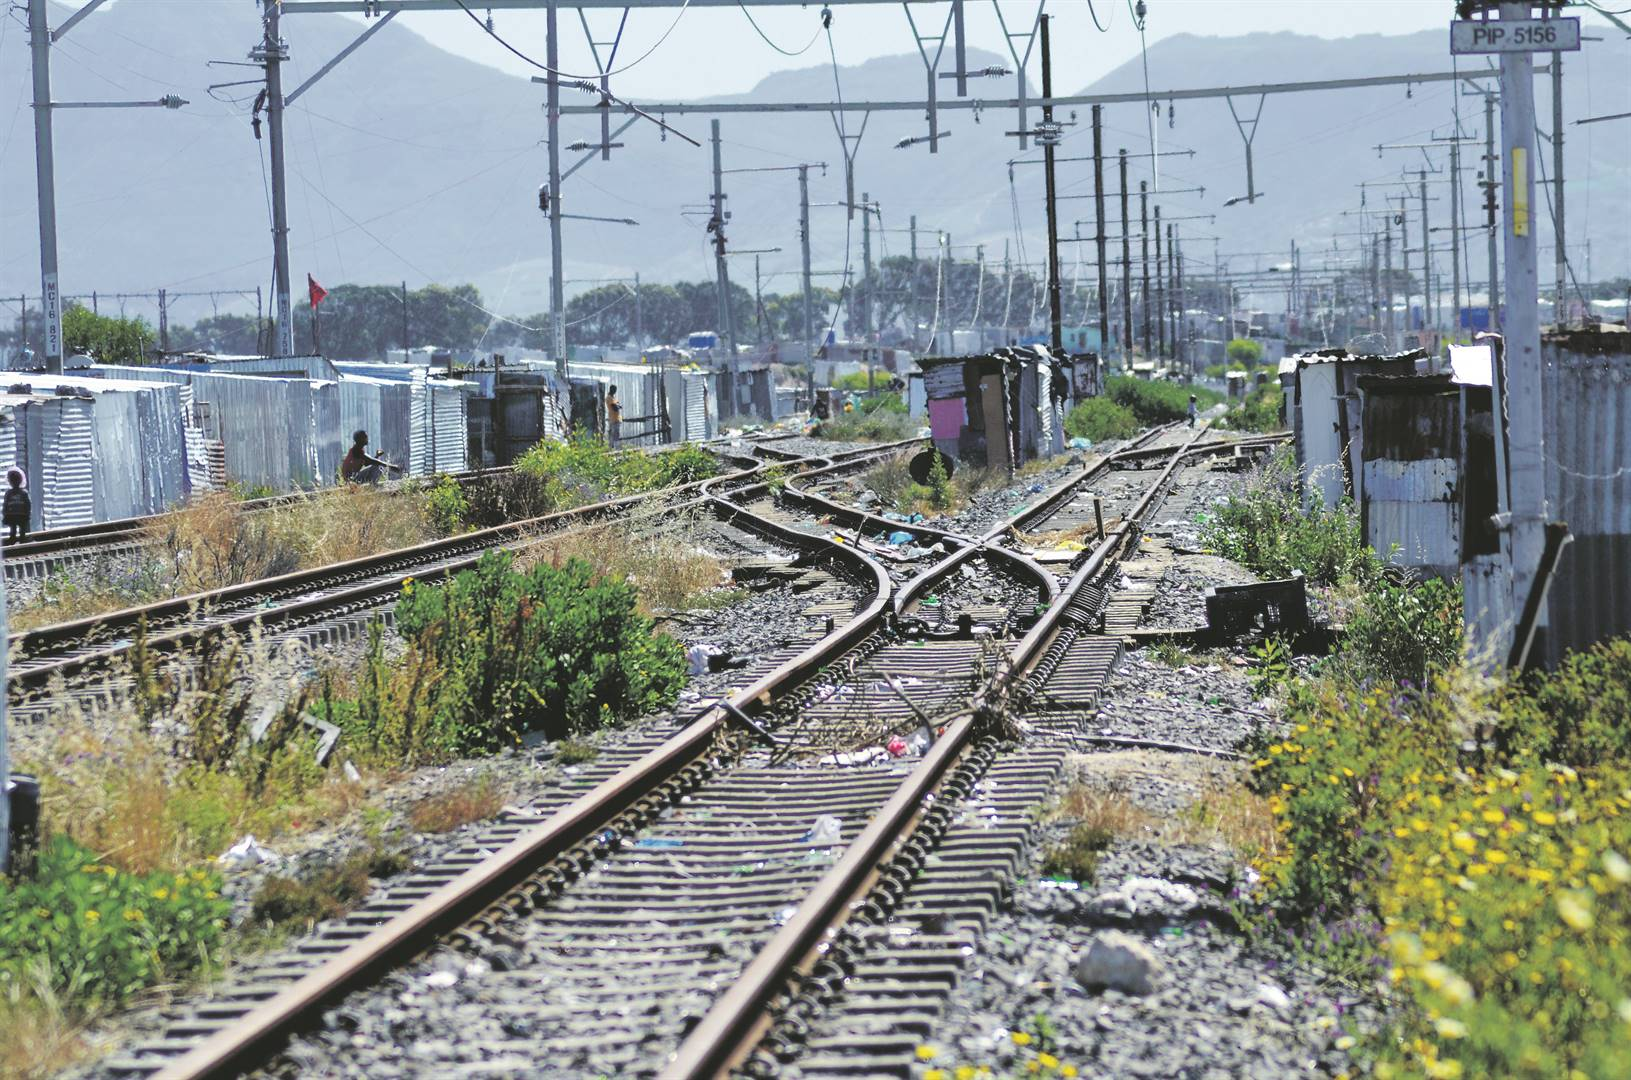 The six-month campaign, whose planning started in December, is driven by Prasa and the department of correctional services, is intended to restore the rail infrastructure ahead of the resumption of services in some corridors. Picture: Lulekwa Mbadamane